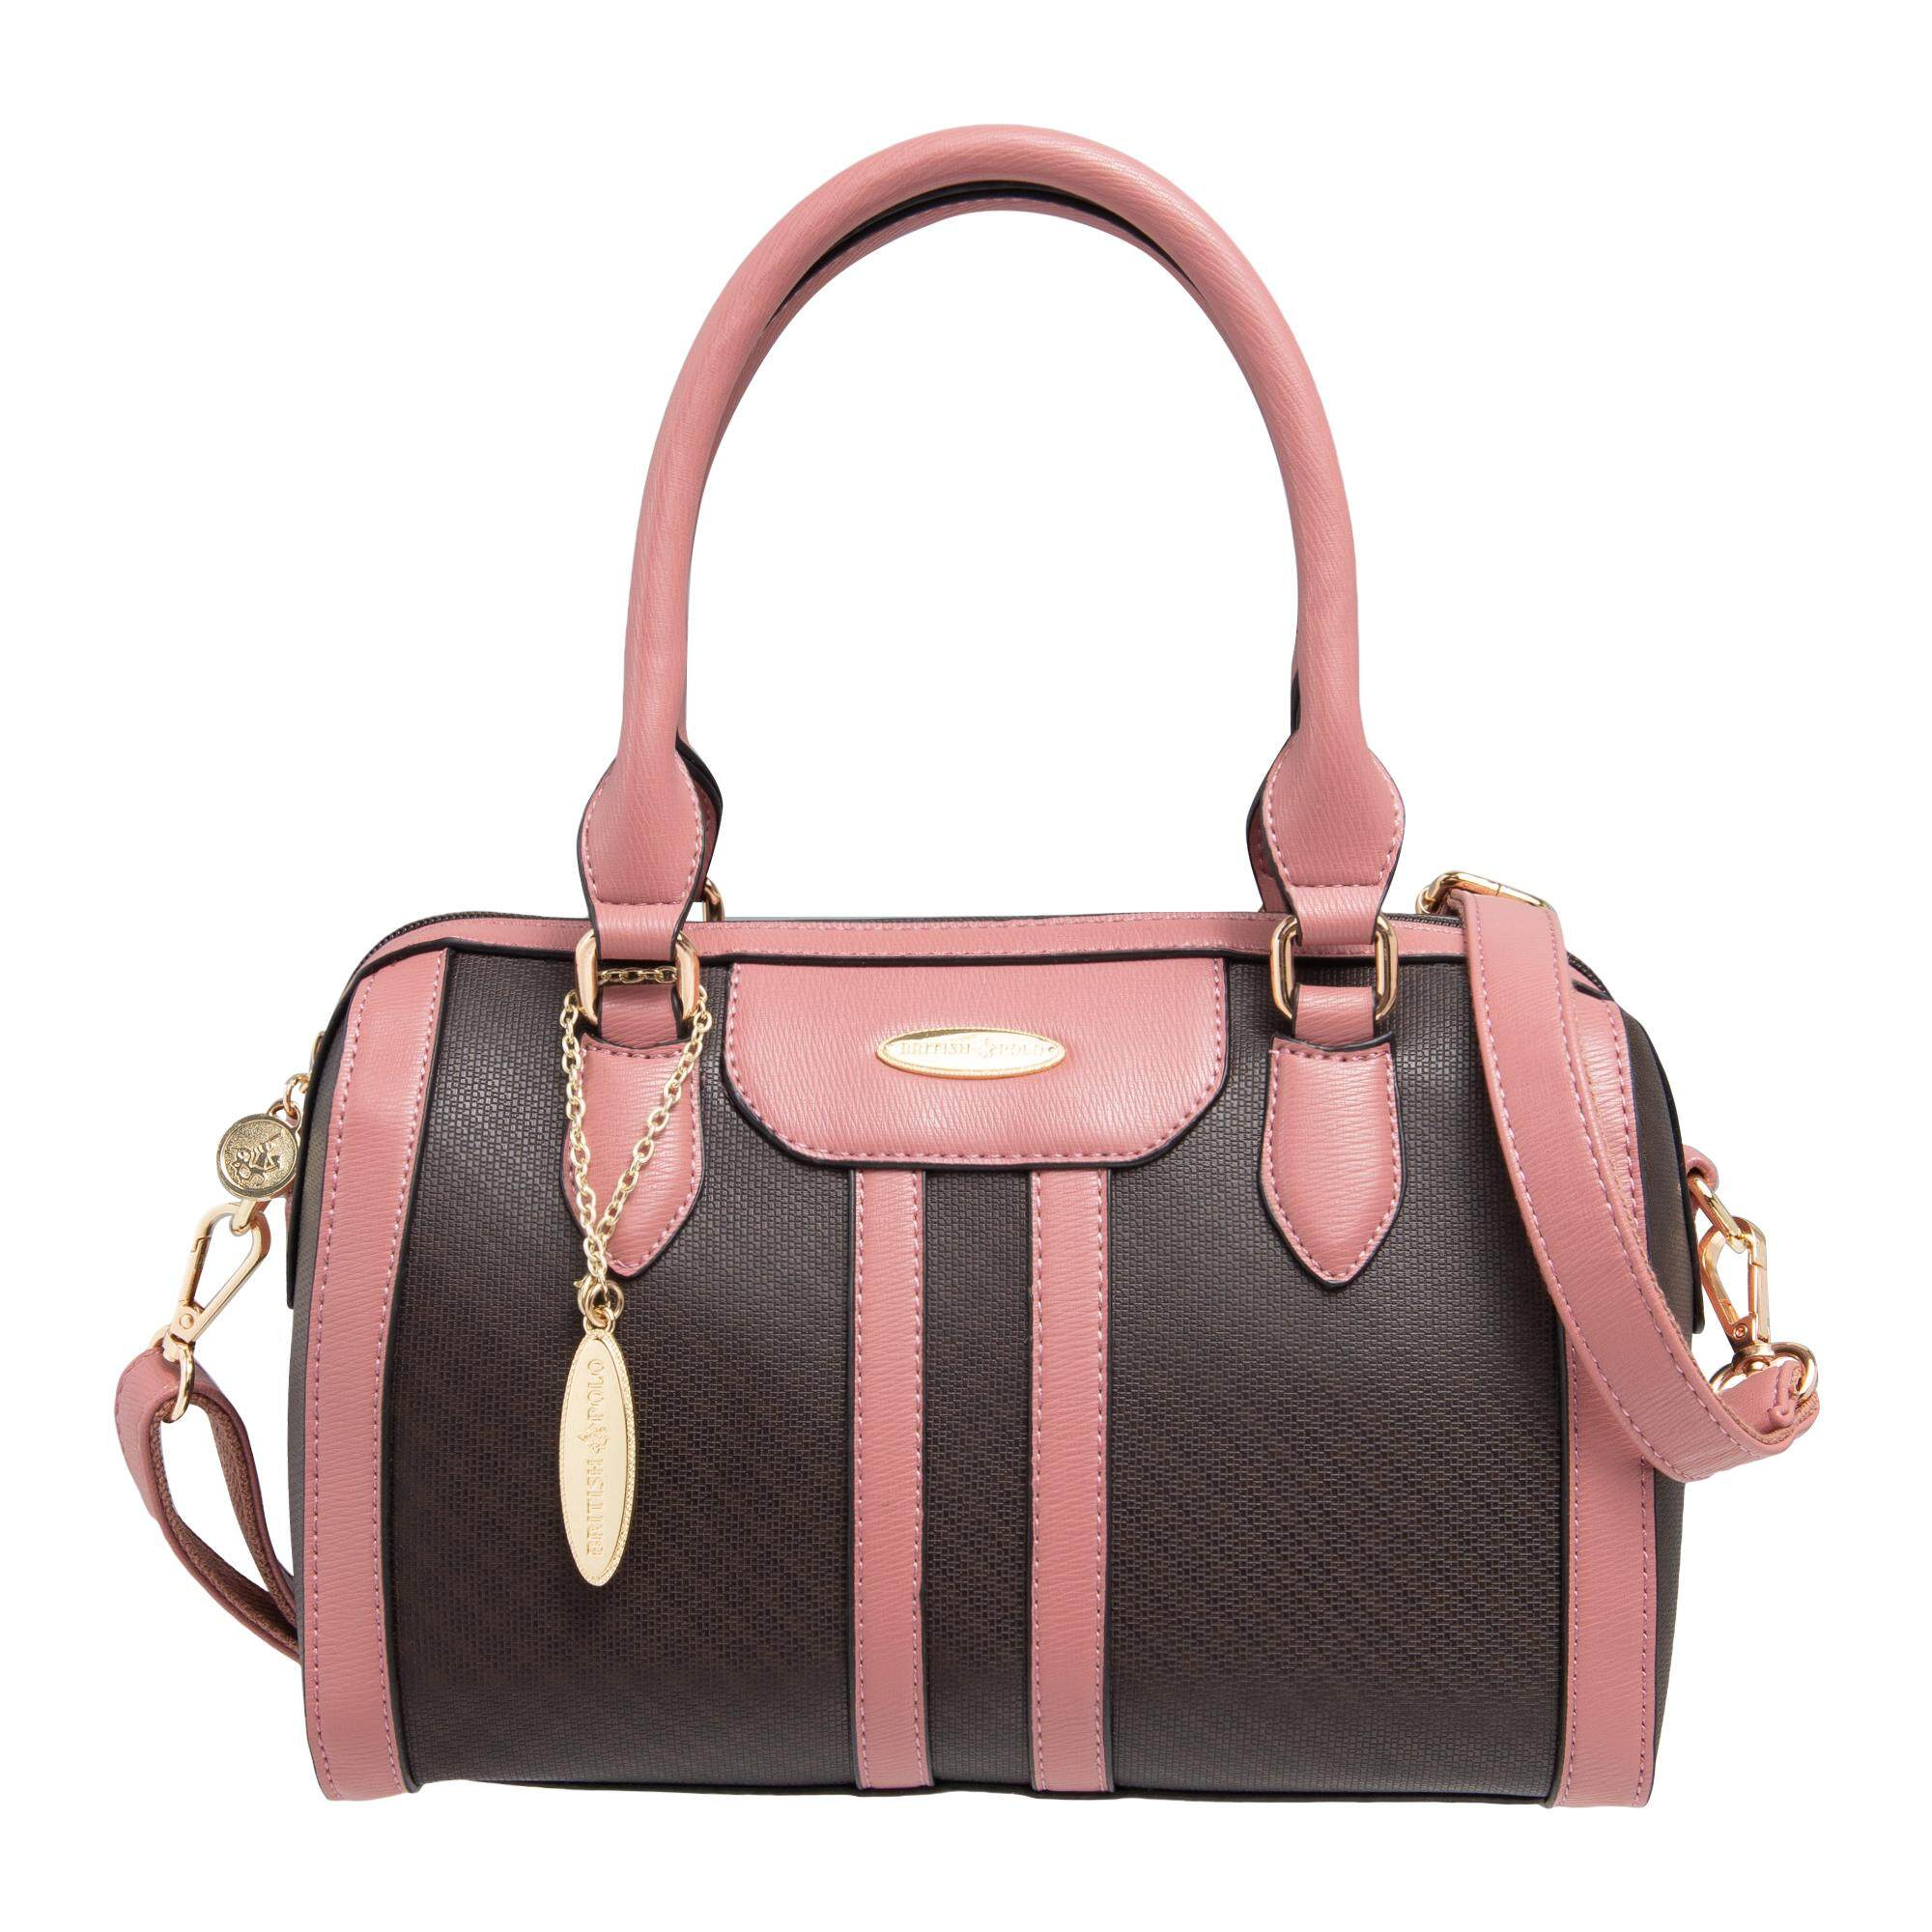 15c960b0a1 British Polo Women Bags price in Malaysia - Best British Polo Women ...